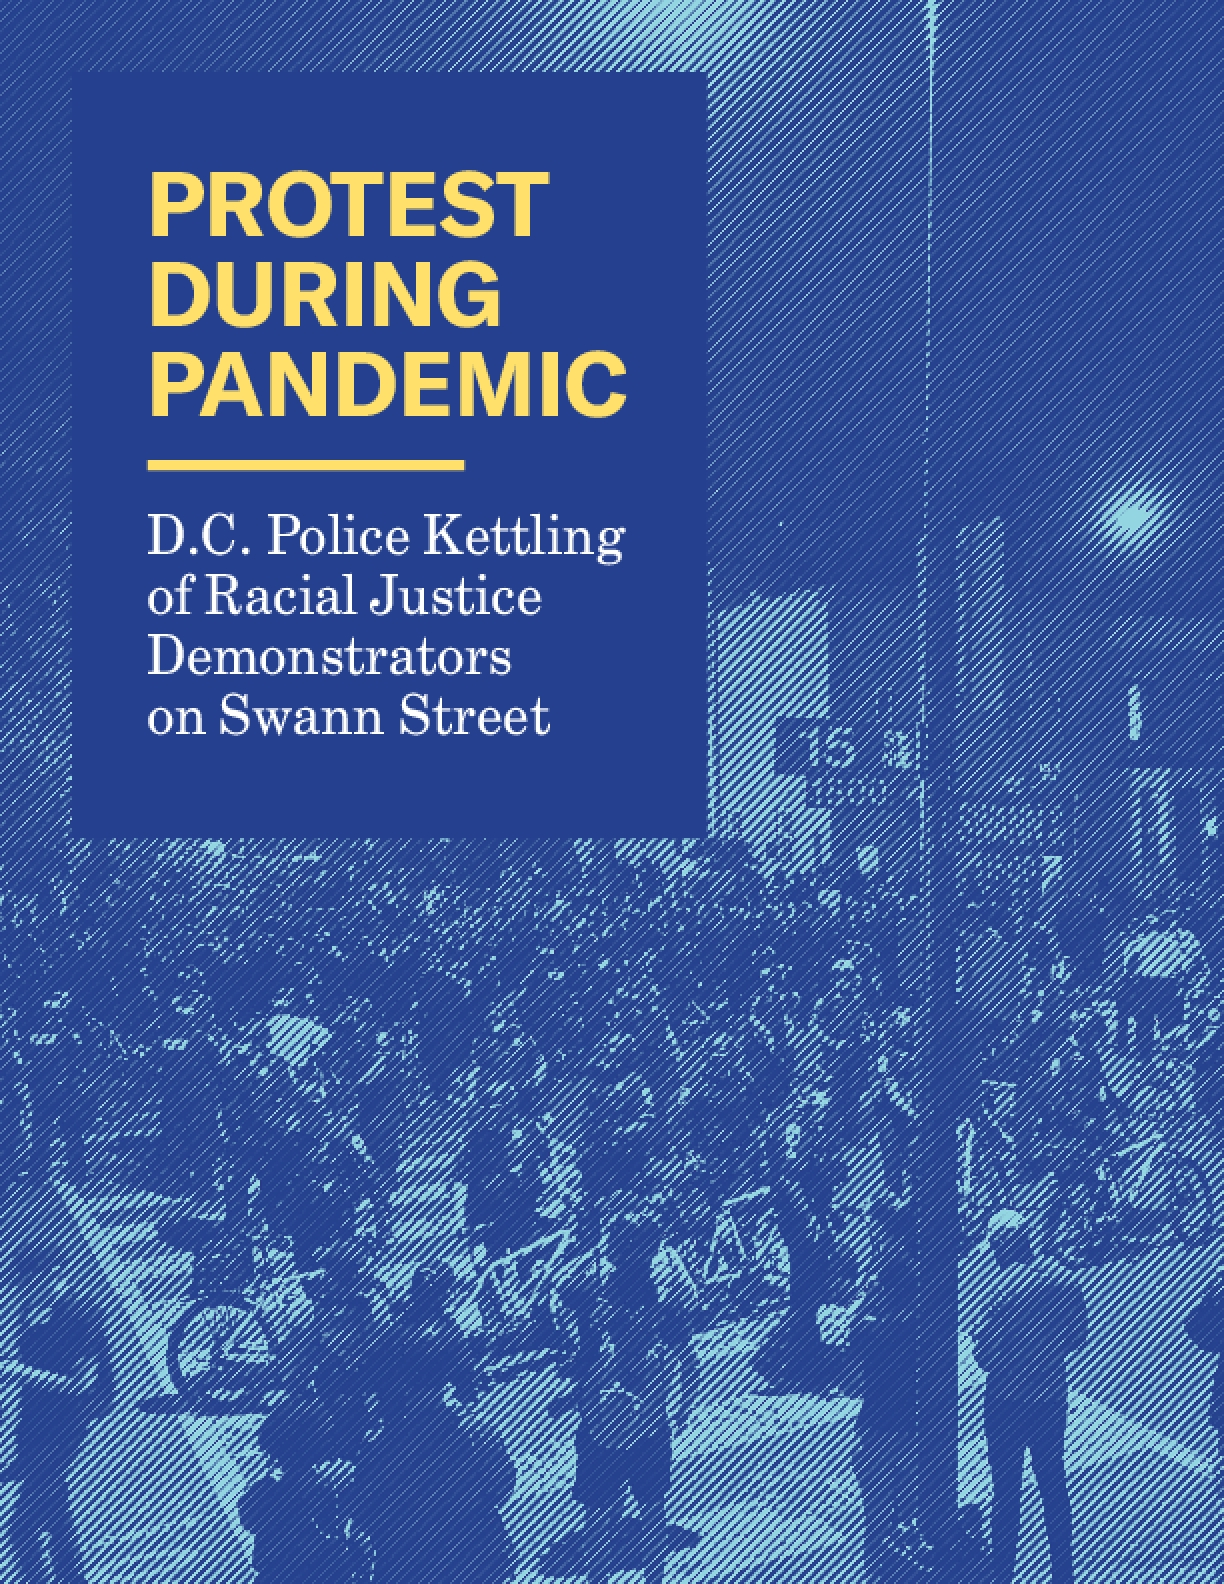 Protest During Pandemic: D.C. Police Kettling of Racial Justice Demonstrators